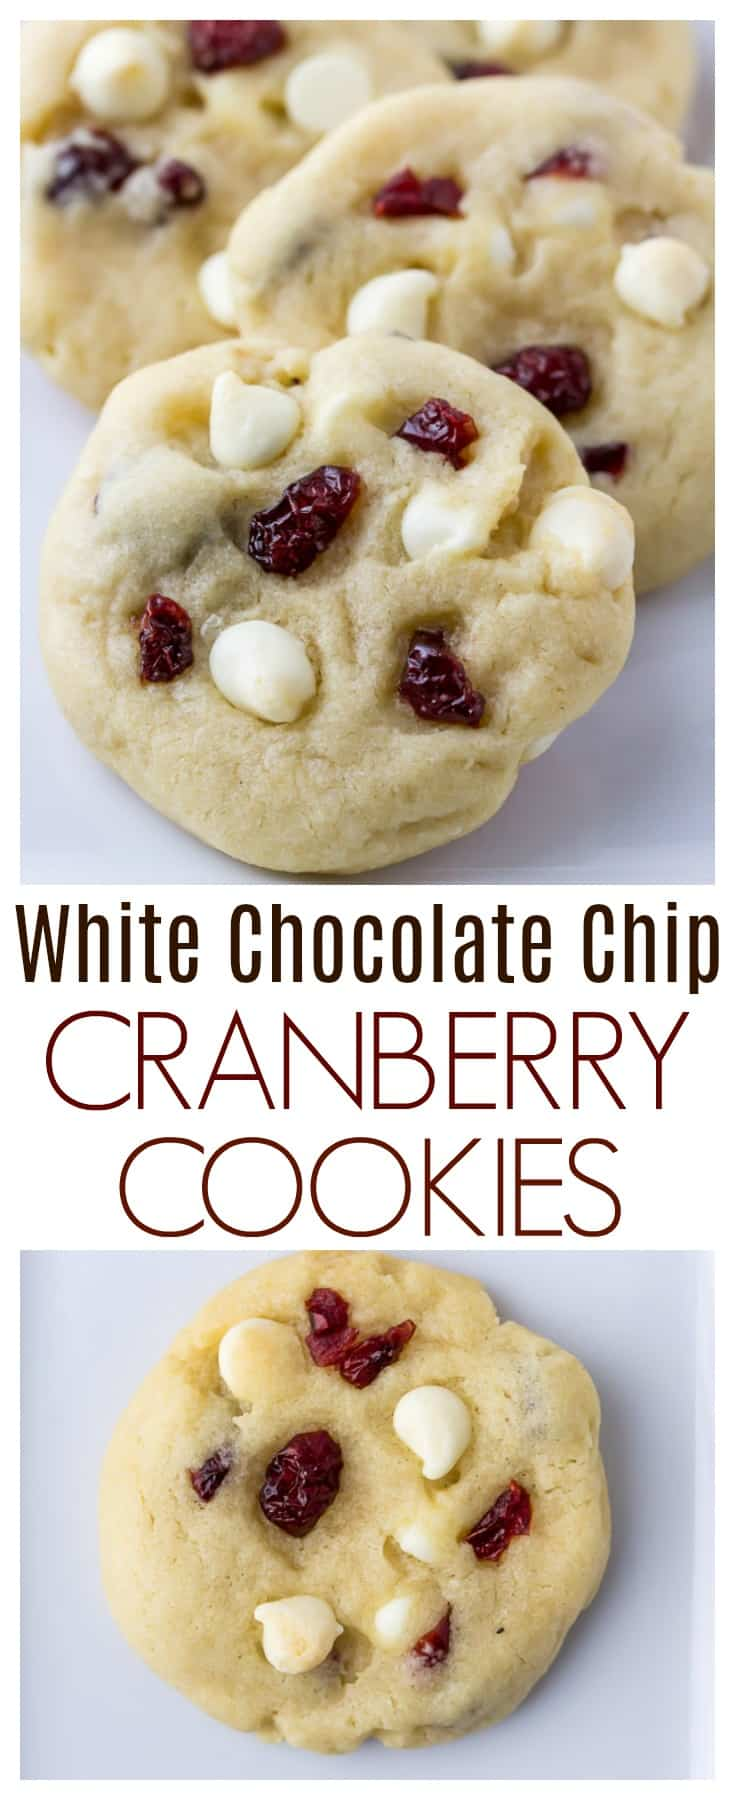 White Chocolate Chip Cranberry Cookies - soft-baked cookies loaded with sweet white chocolate and tart cranberries. These cookies stay soft even days later. This is an easy recipe that's perfect for the holidays and Christmas cookie exchanges too! | #dlbrecipes #cookies #whitechocolate #cookieexchange #dessert